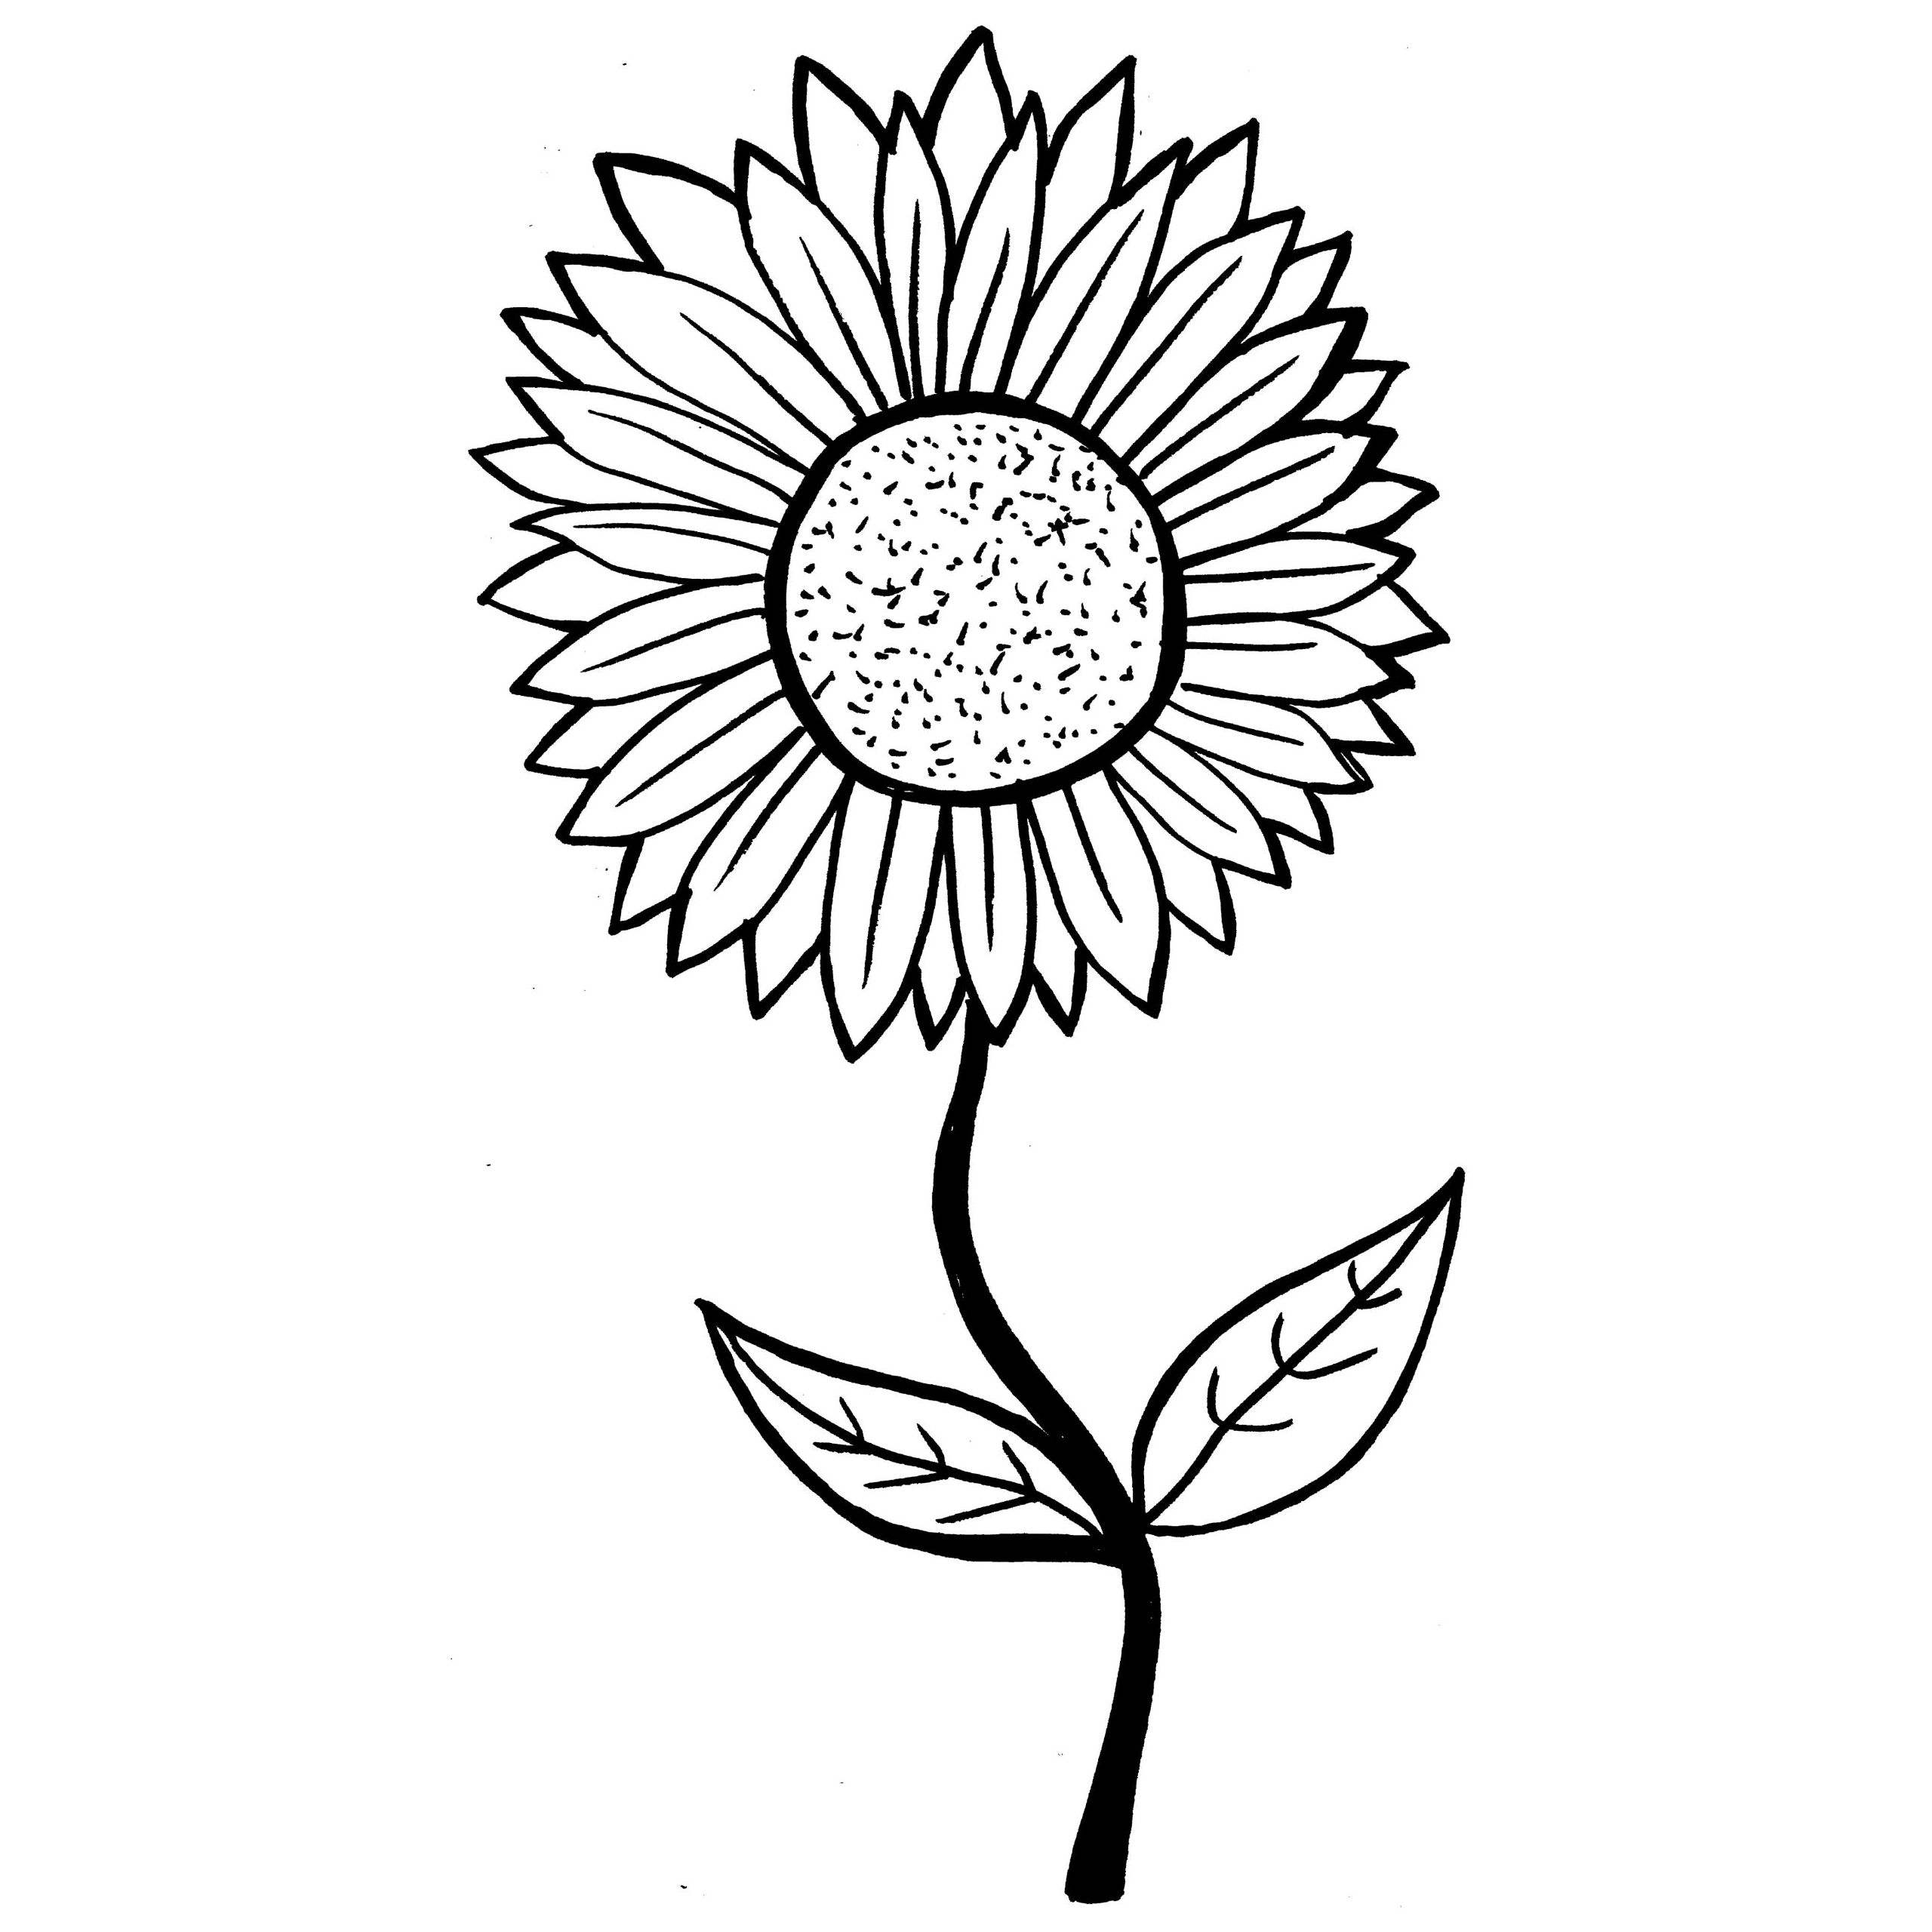 chrysanthemum coloring pages chrysanthemum drawing free download on clipartmag pages chrysanthemum coloring